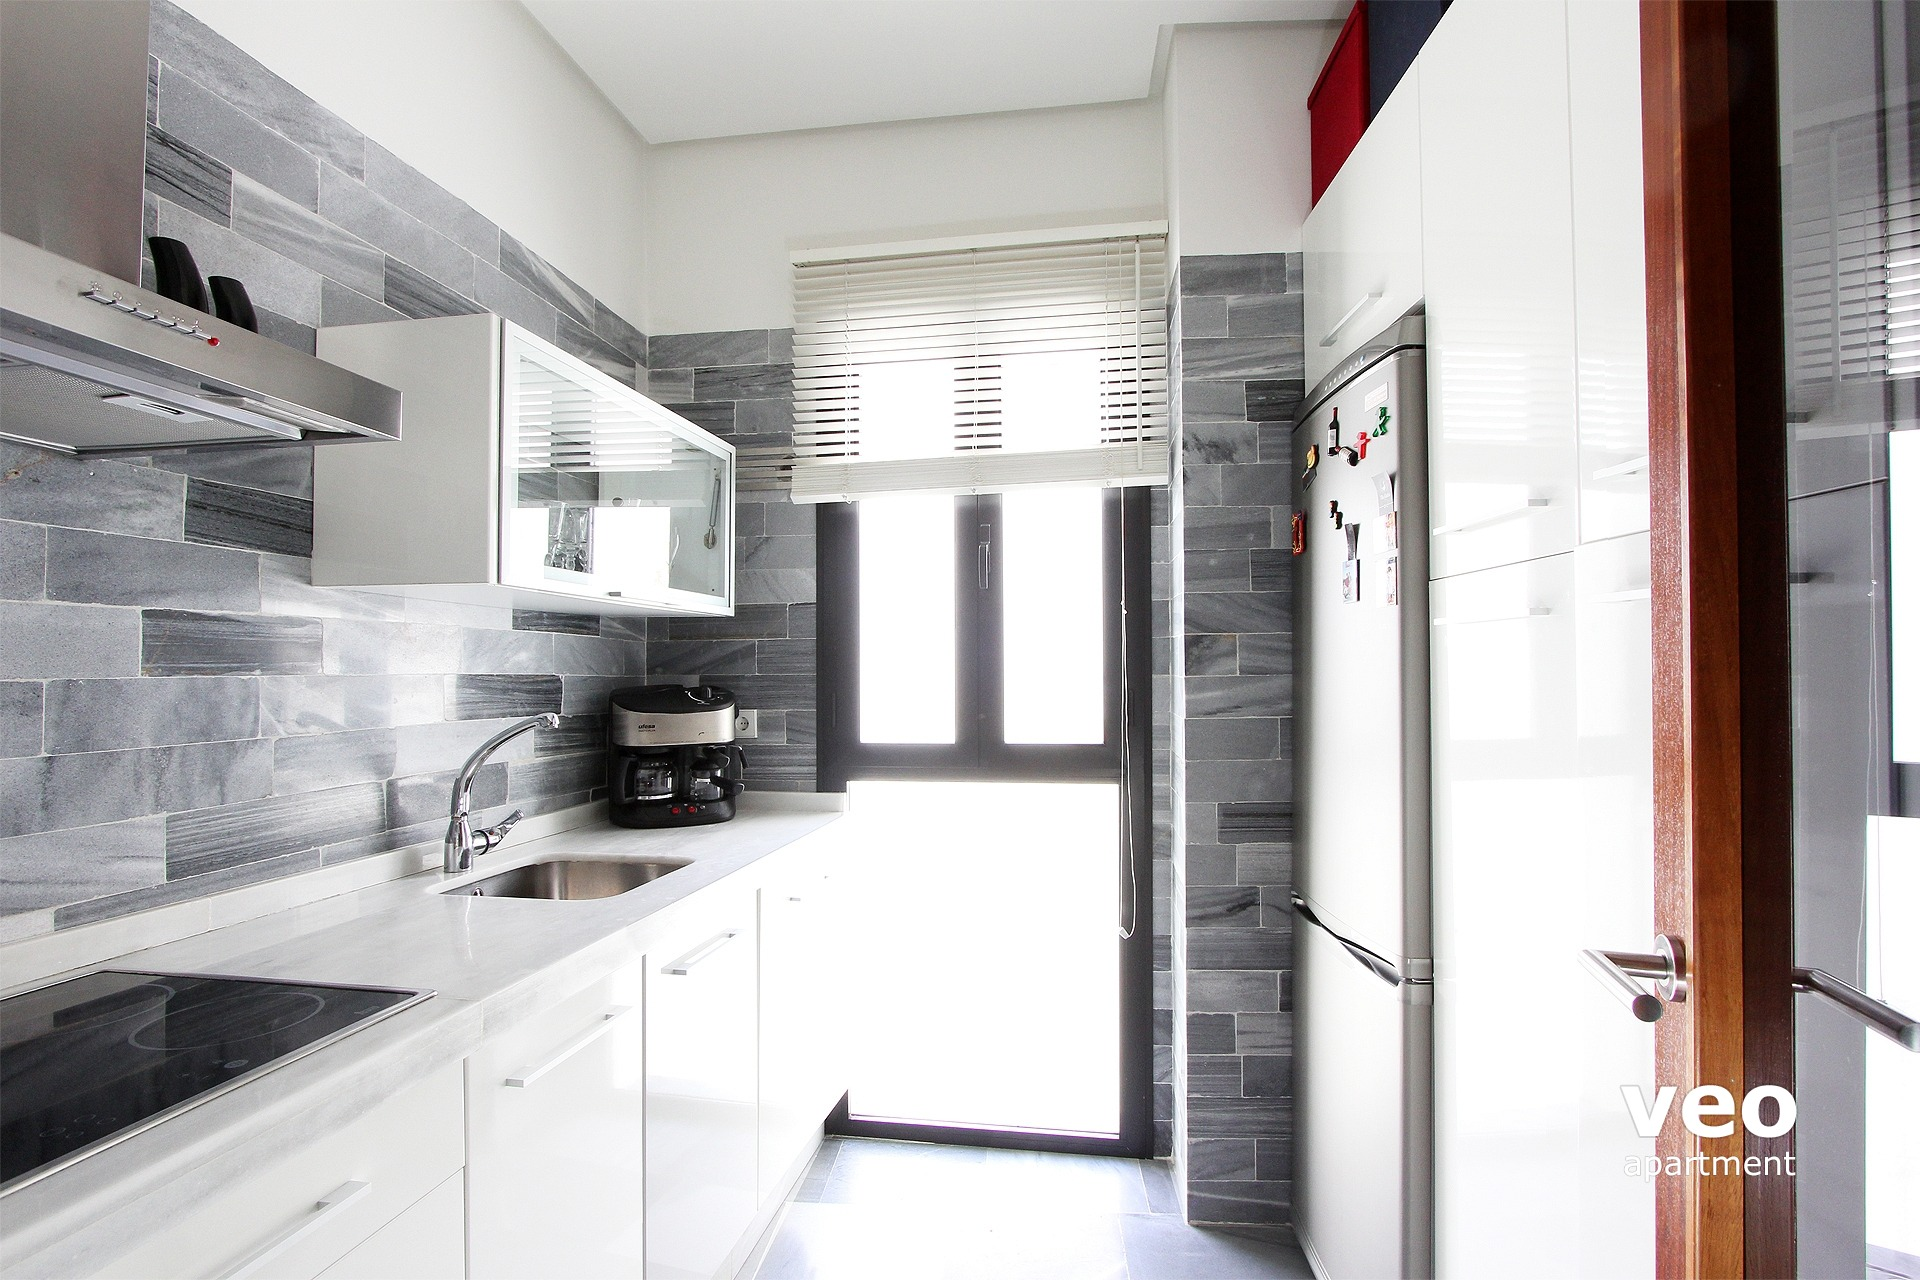 seville apartment the kitchen has modern appliances and utensils for